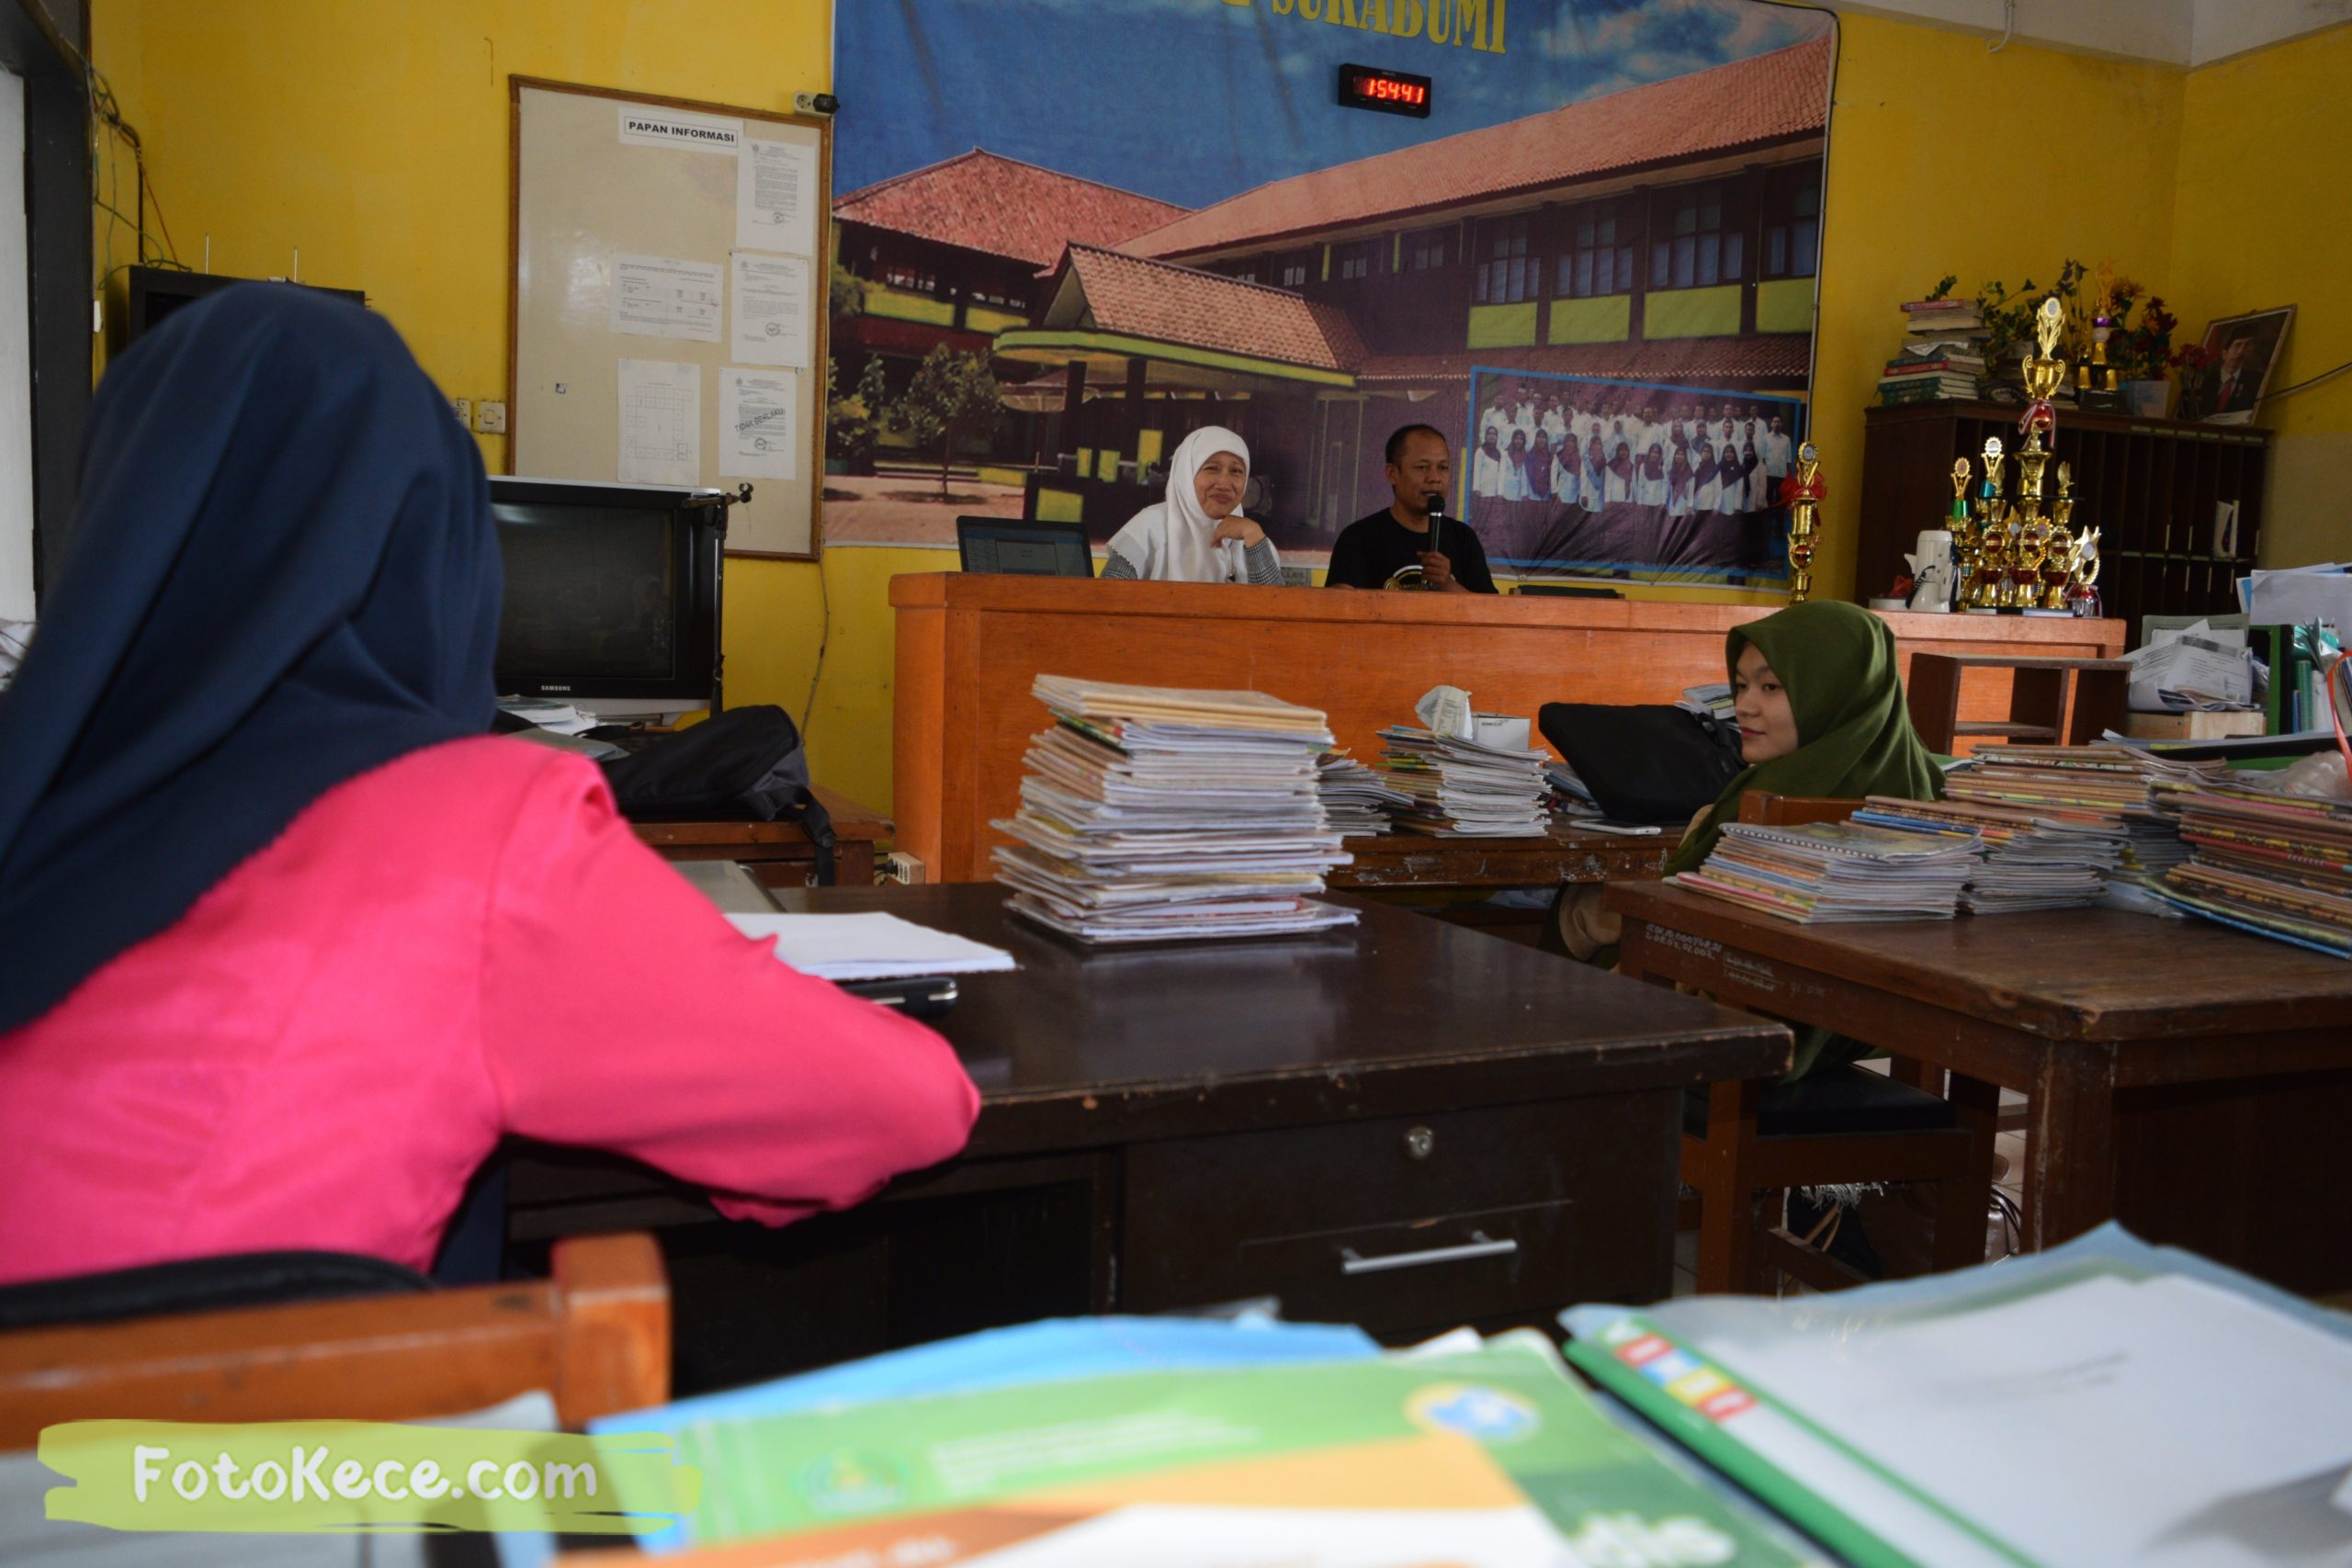 podium rapat ai jaenal meeting intern siap technikal meeting milad 52 mtsn 2 sukabumi 06022020 foto kece 18 scaled